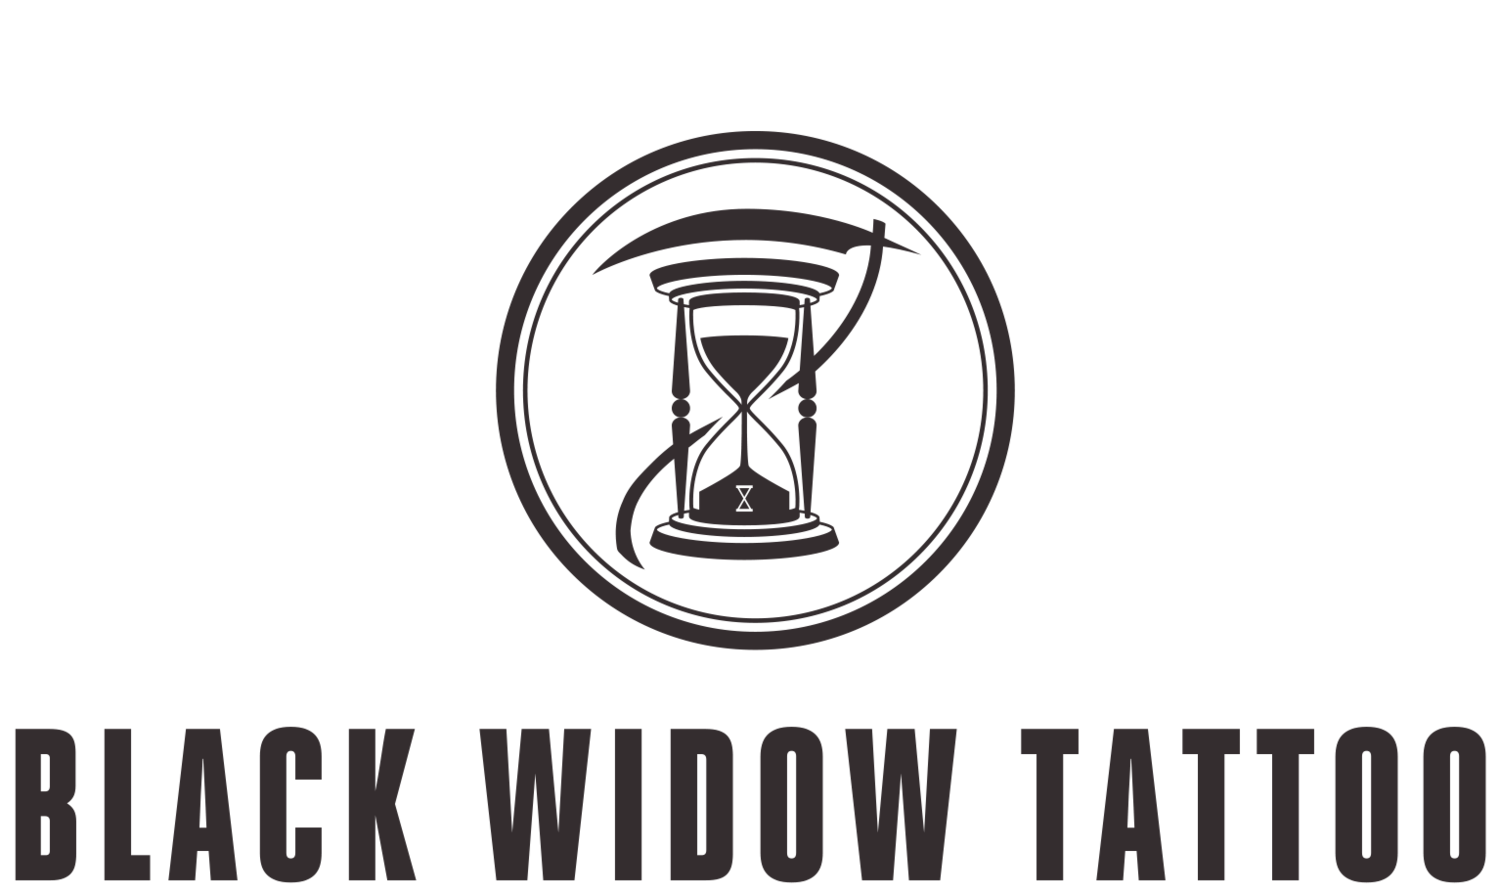 BLACK WIDOW TATTOO